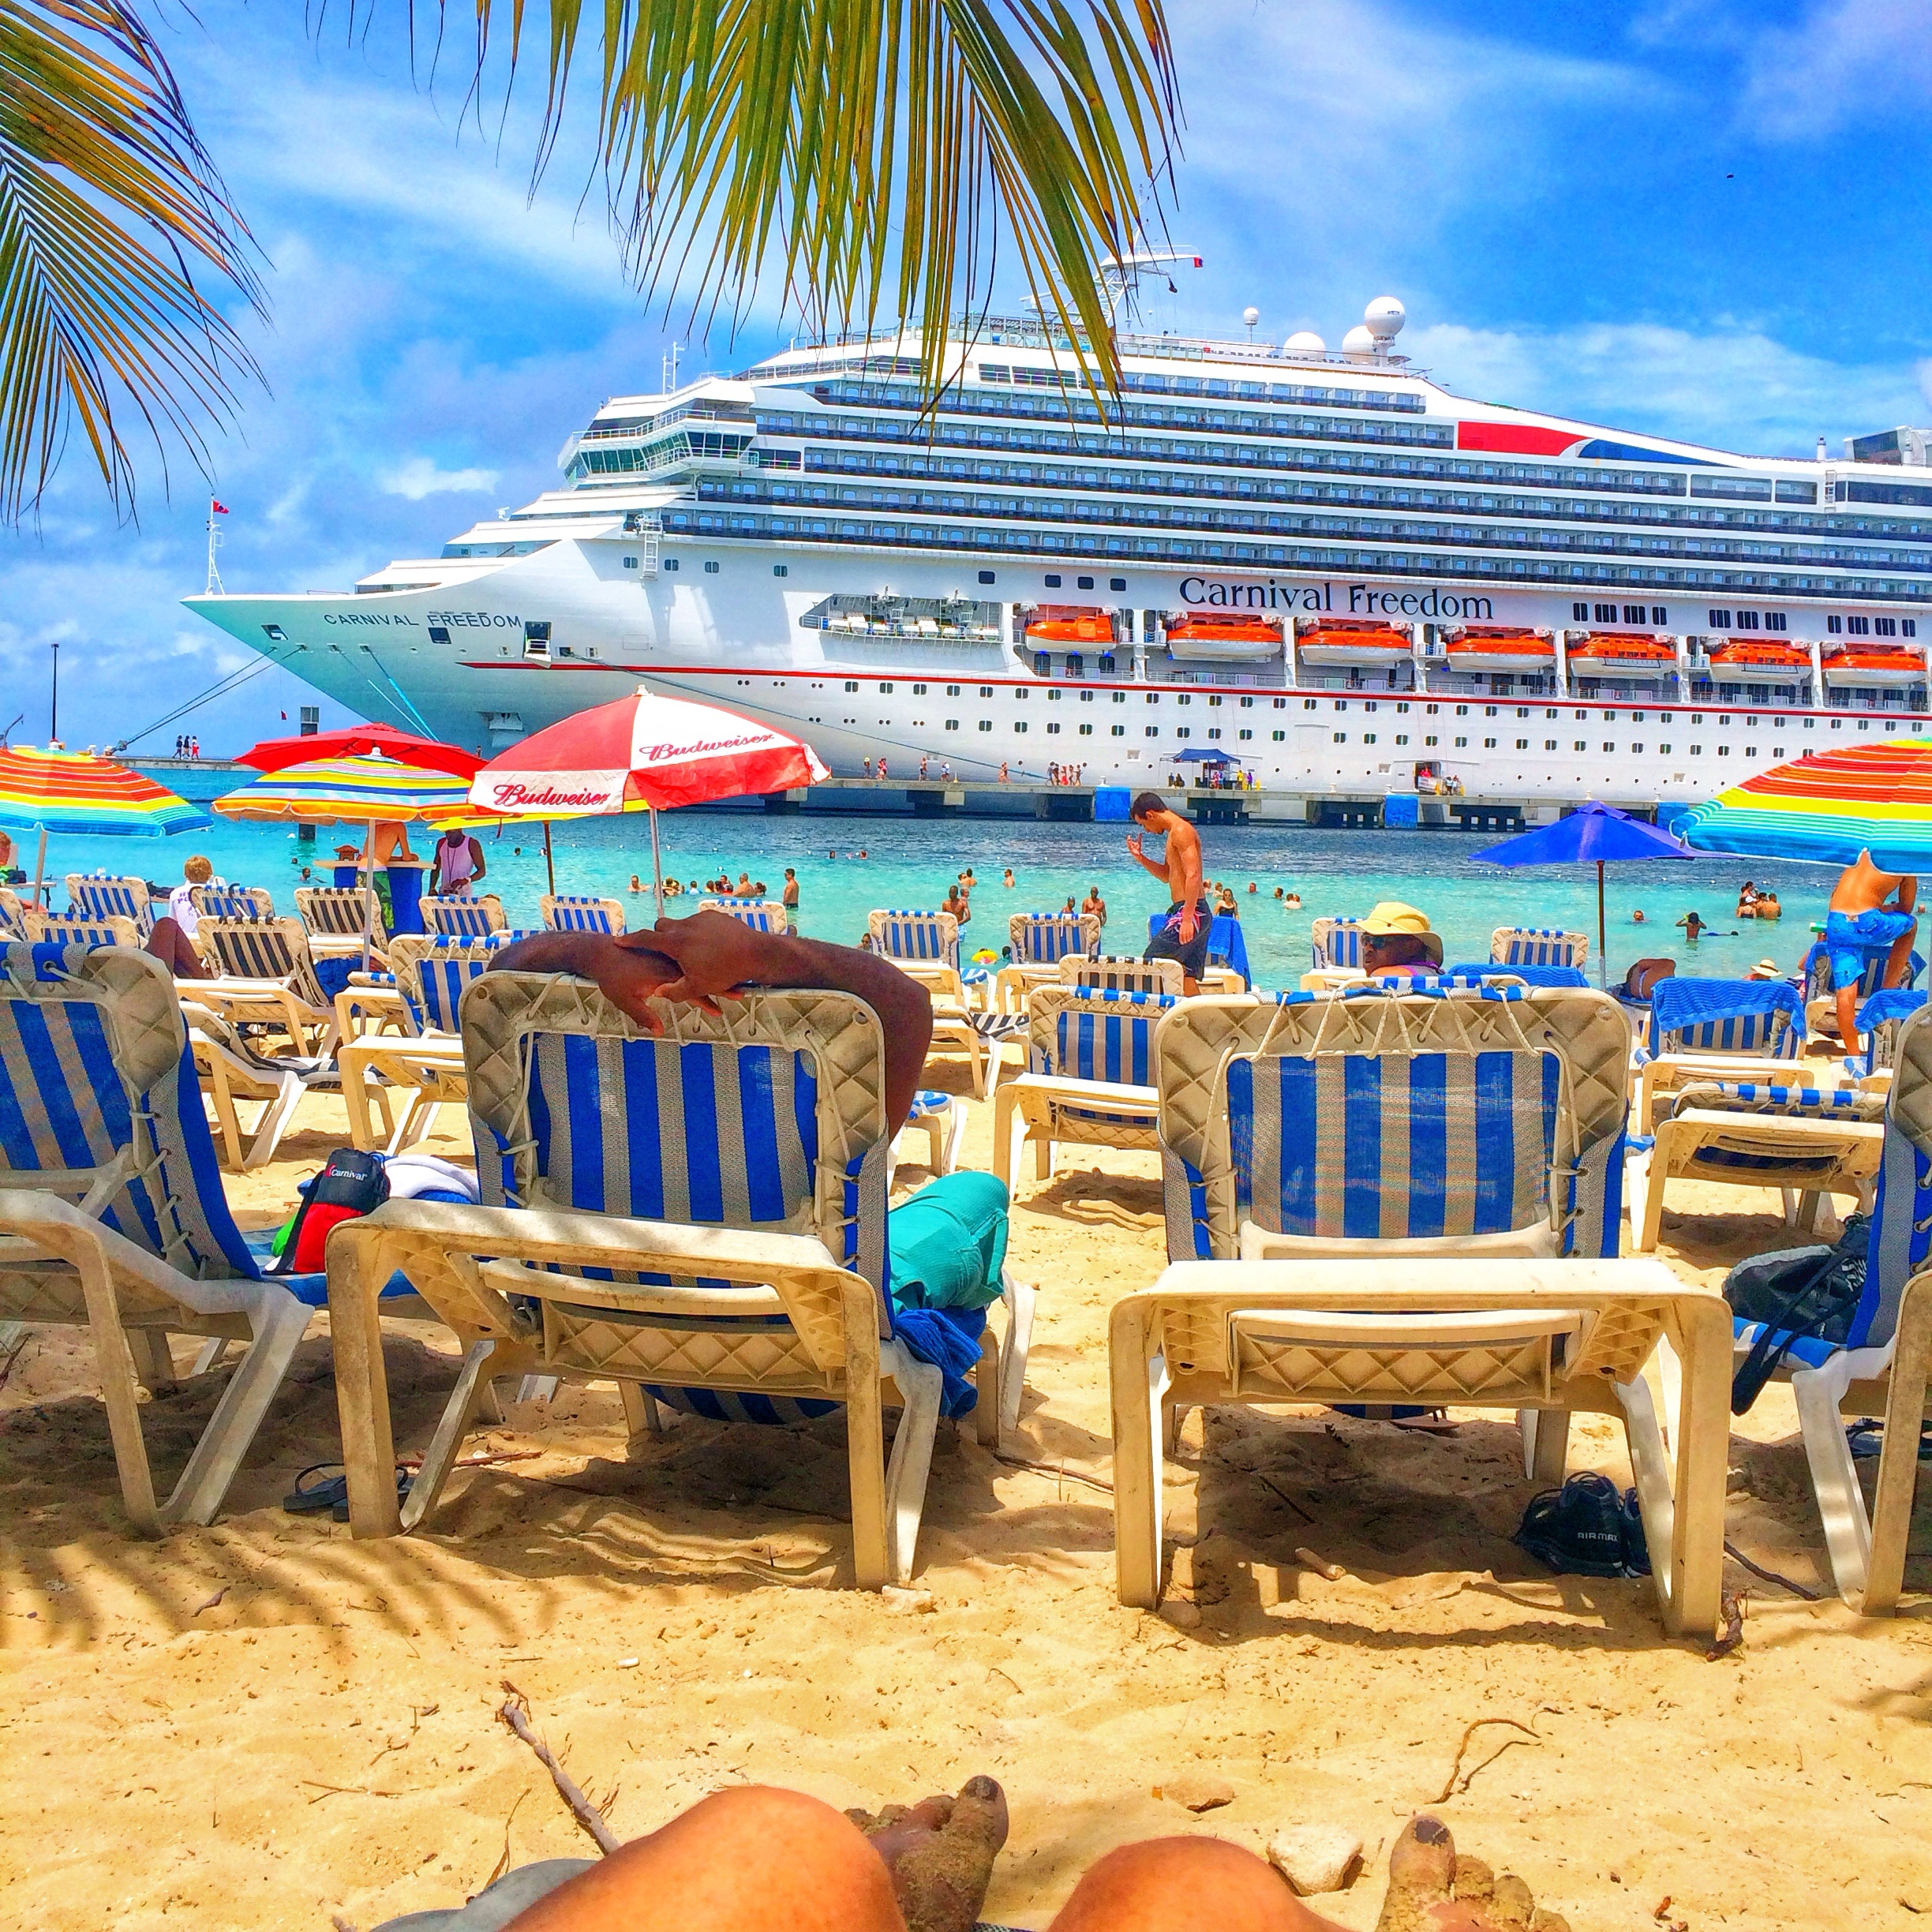 How To Cruise Like A Pro Travel Tips You Should Know As A - Do cruise ships have cell service